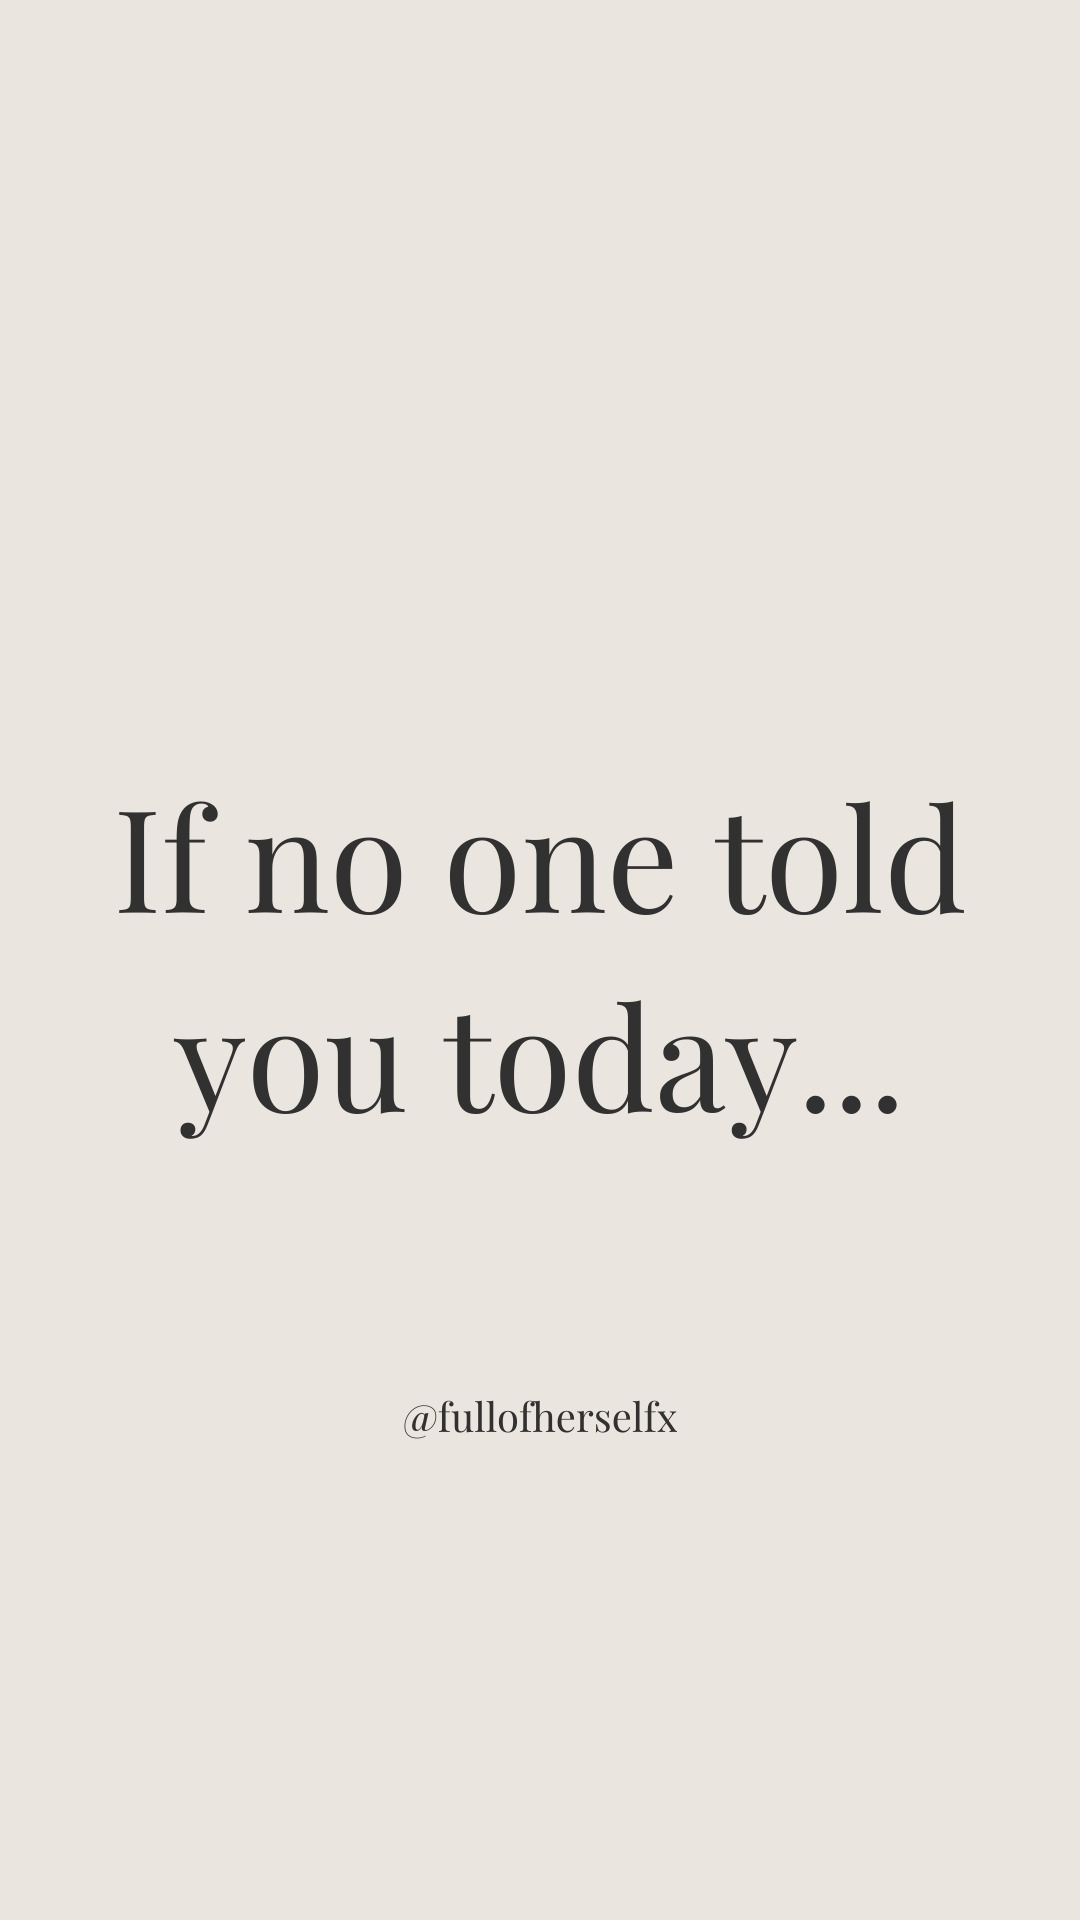 If no one told you today...